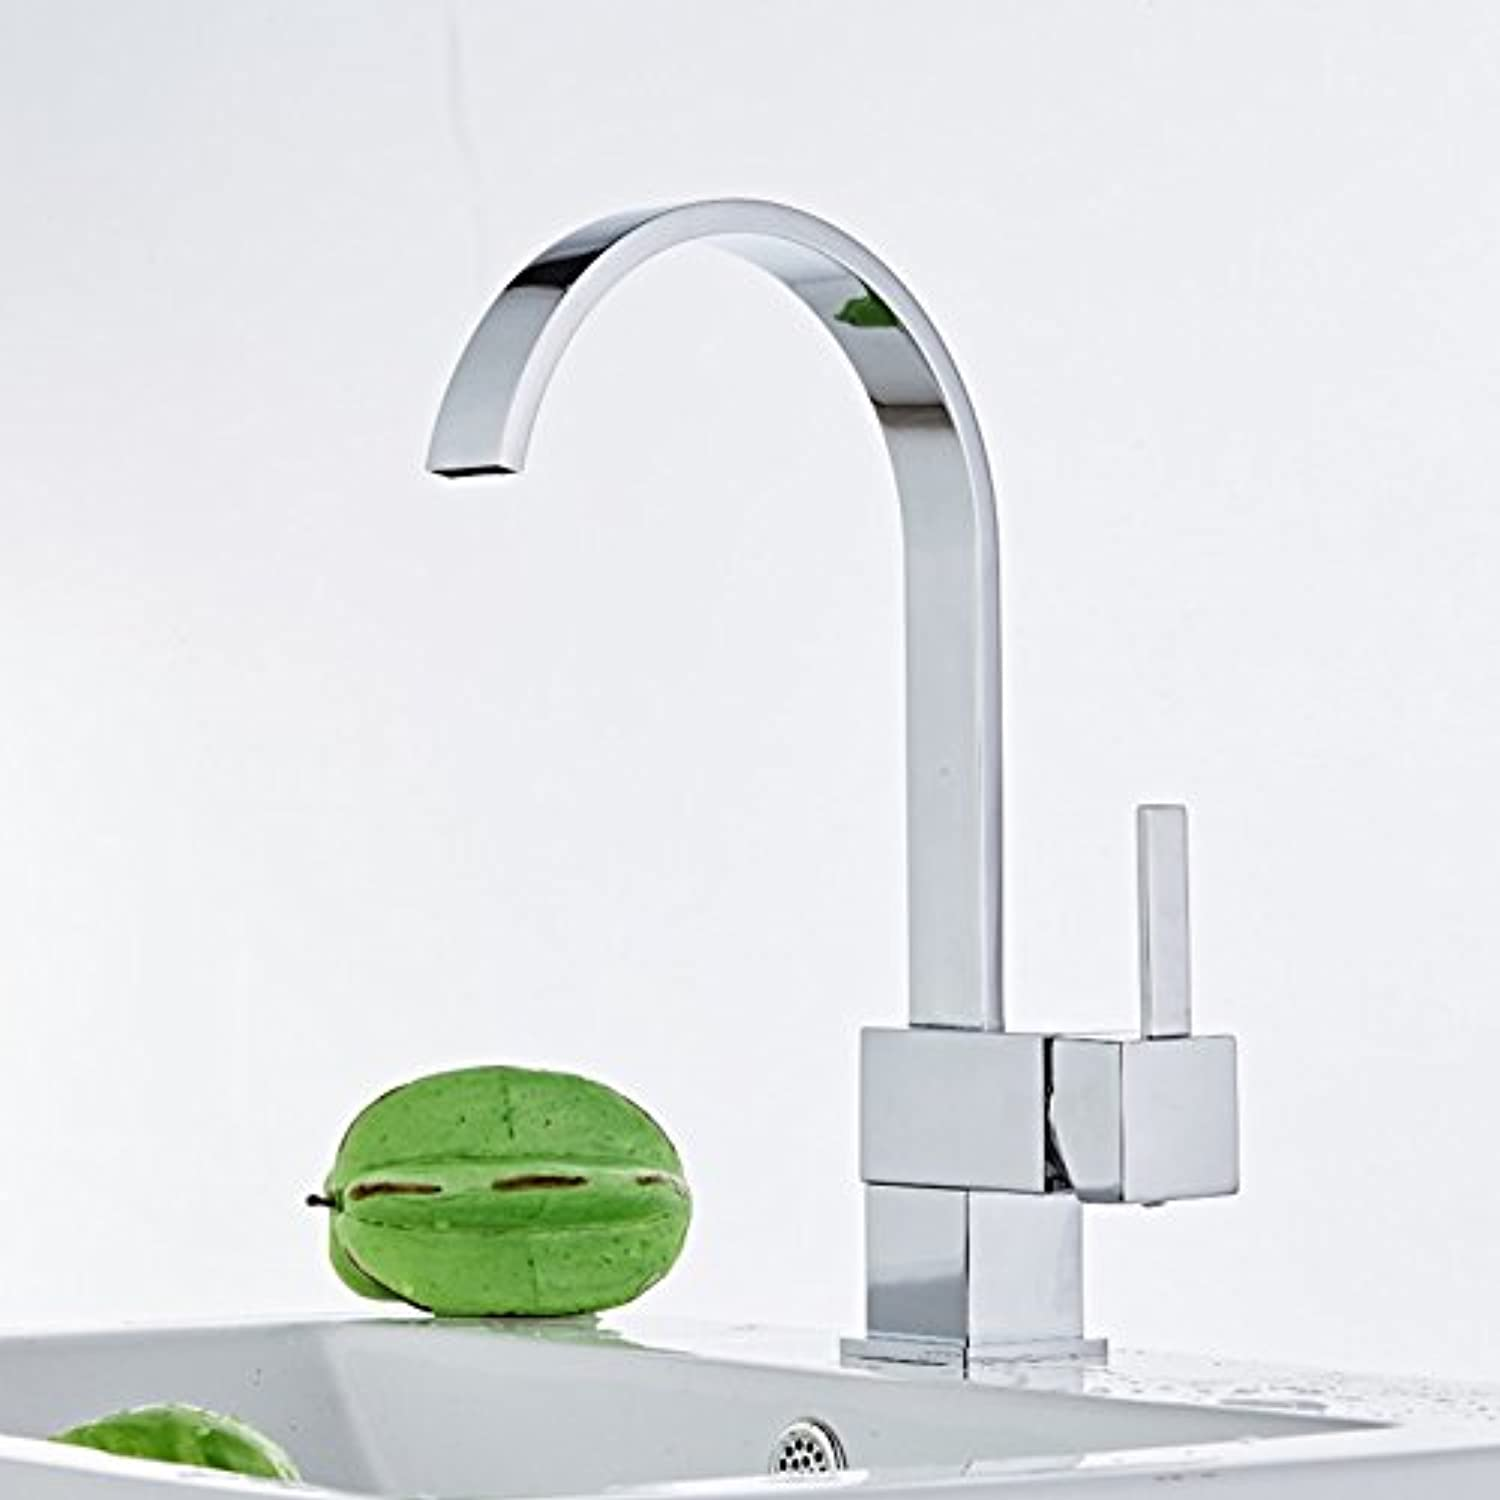 Commercial Single Lever Pull Down Kitchen Sink Faucet Brass ConstructedHot and Cold Water Faucet_Manufacturer Copper Kitchen Faucet,hot and Cold Water Faucet,Single Hole hot and Cold Water Tank,GB